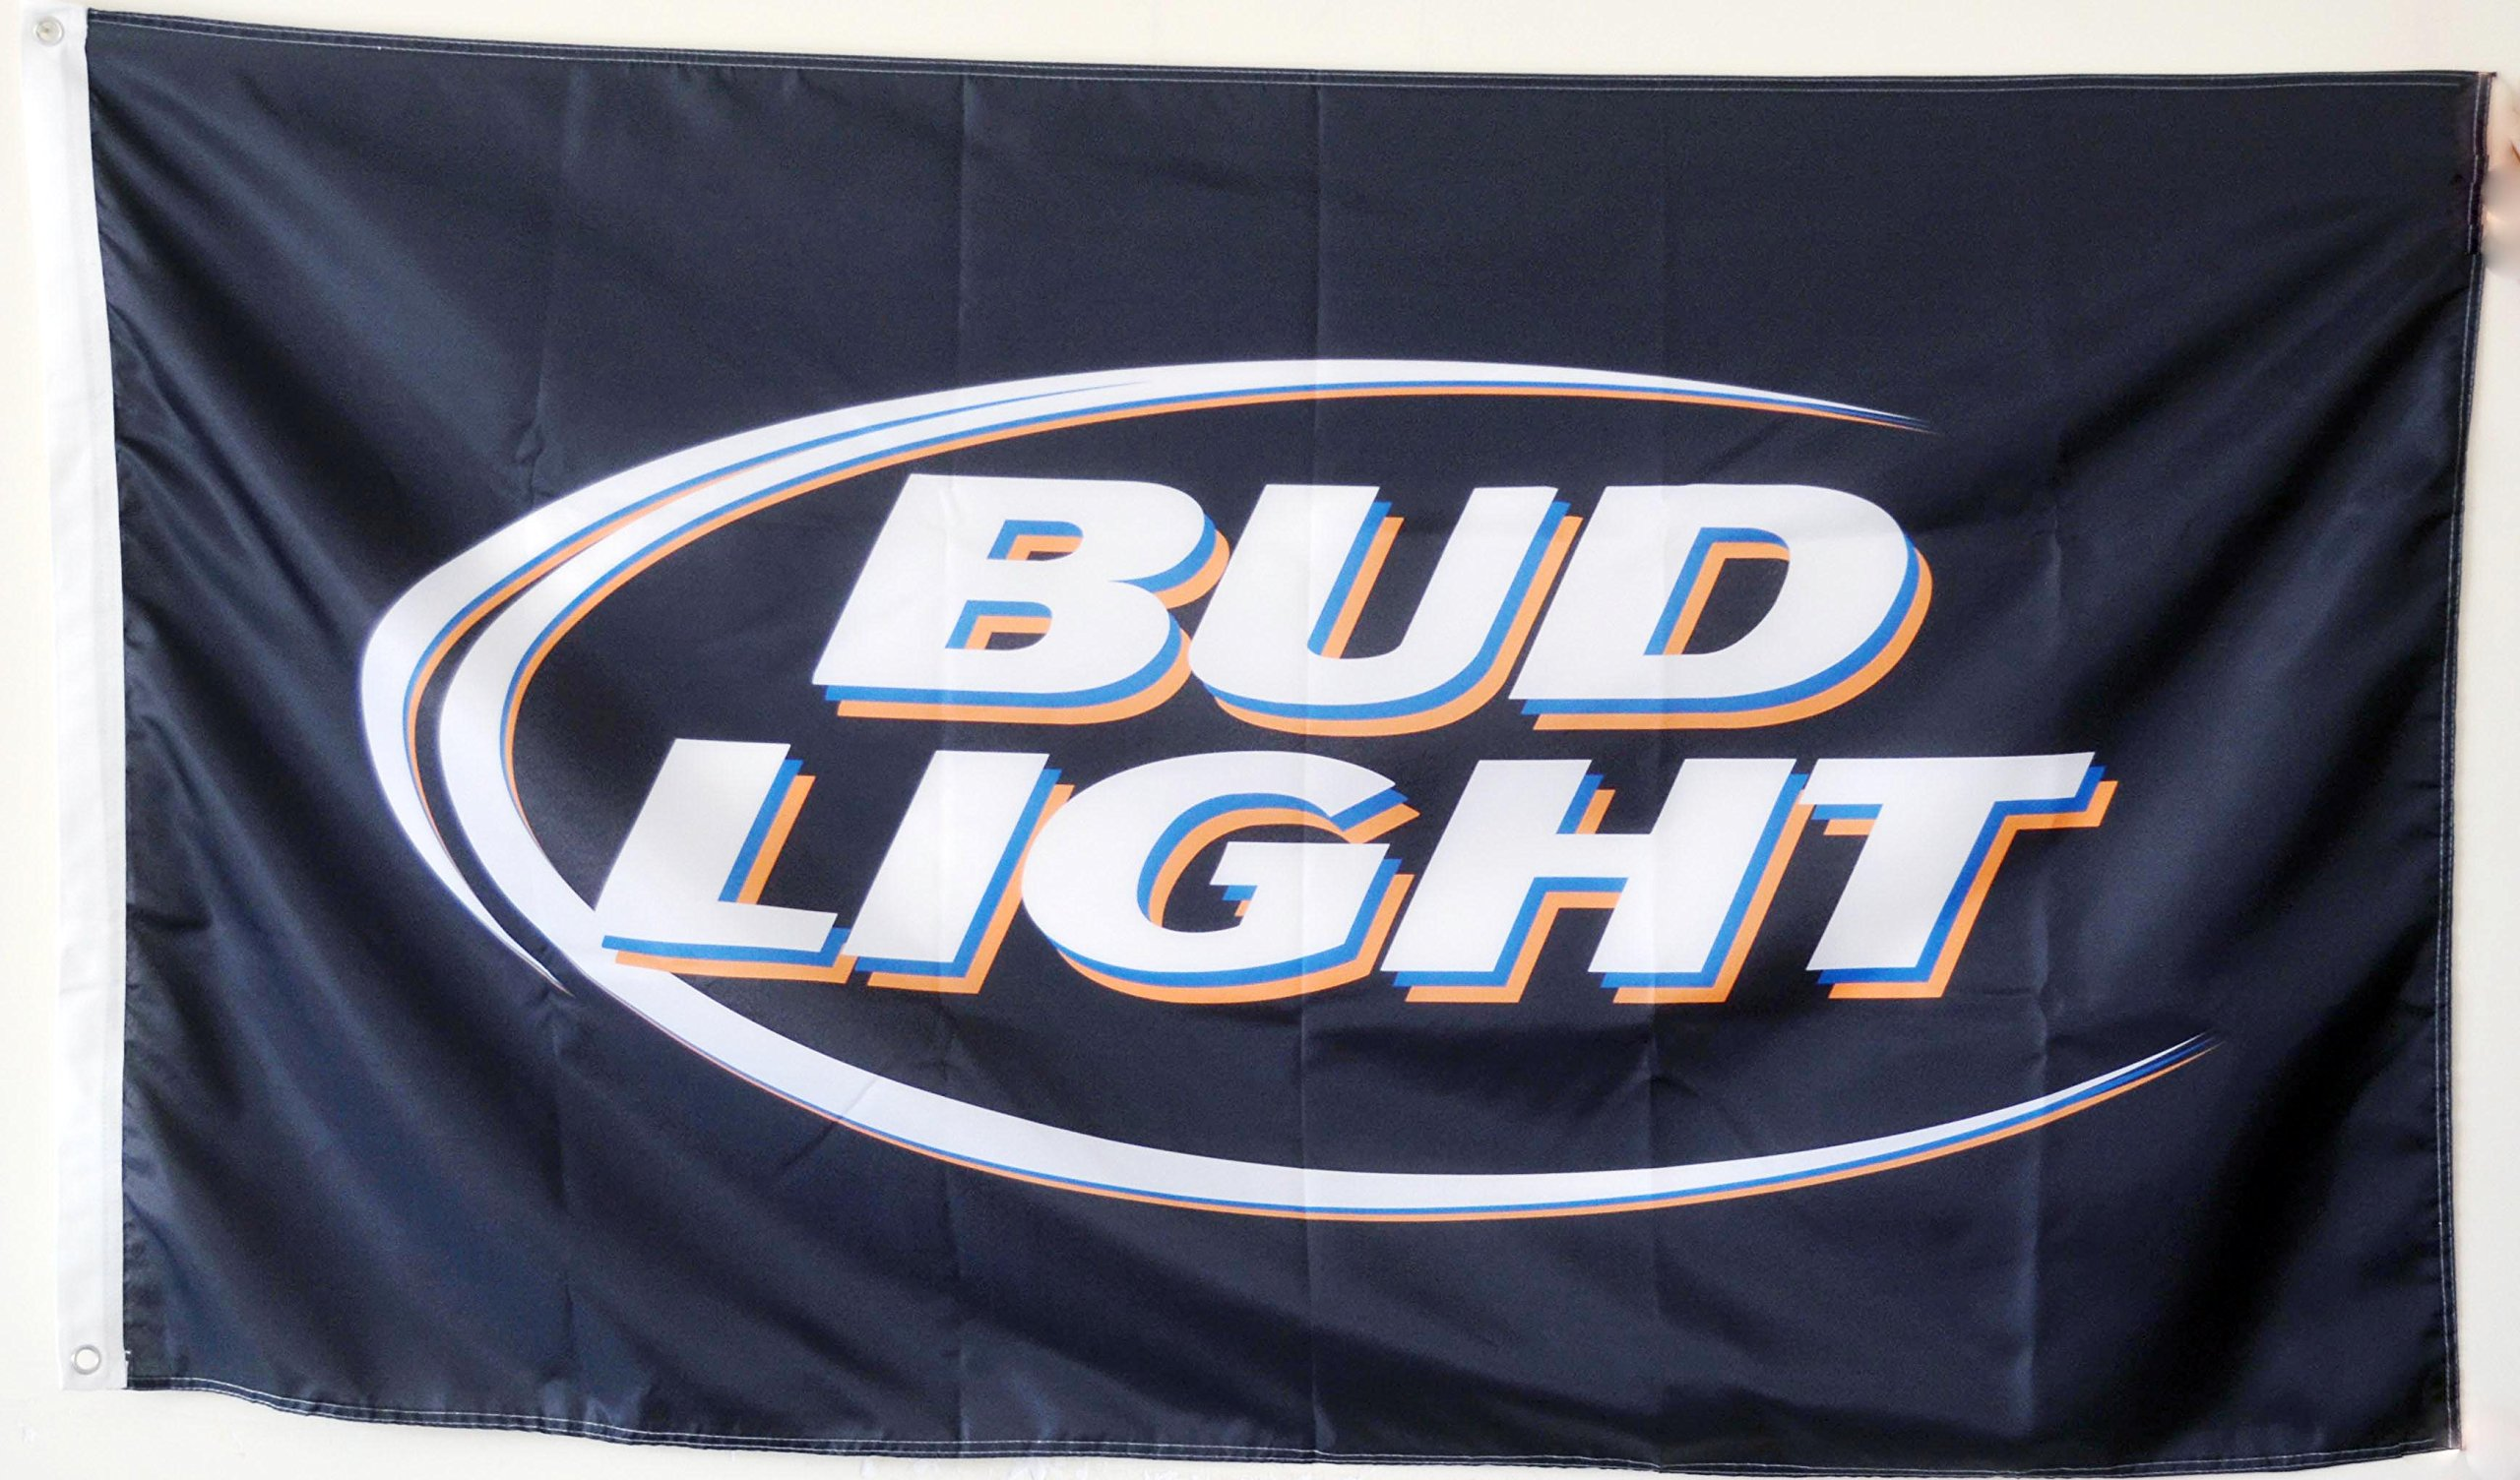 2But Bud Light Beer Flag Banner 3x5 Feet Man Cave by 2But